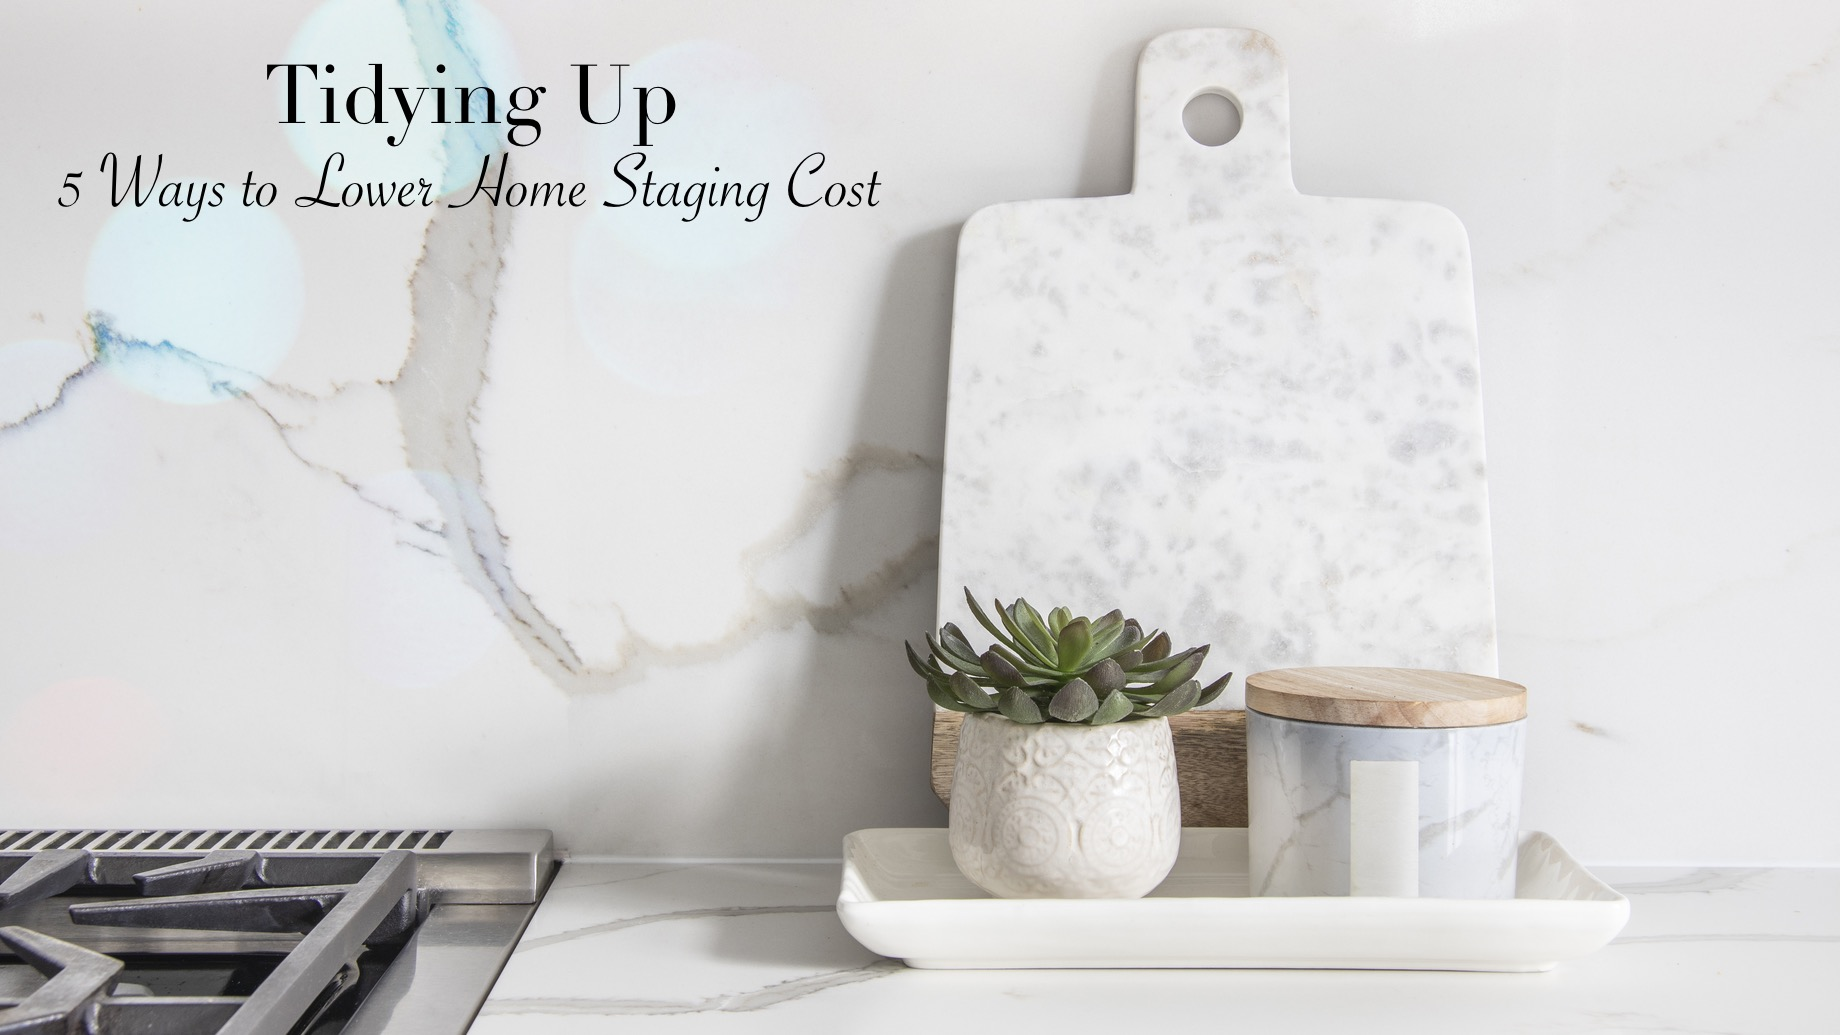 Tidying Up - 5 Ways to Lower Home Staging Cost